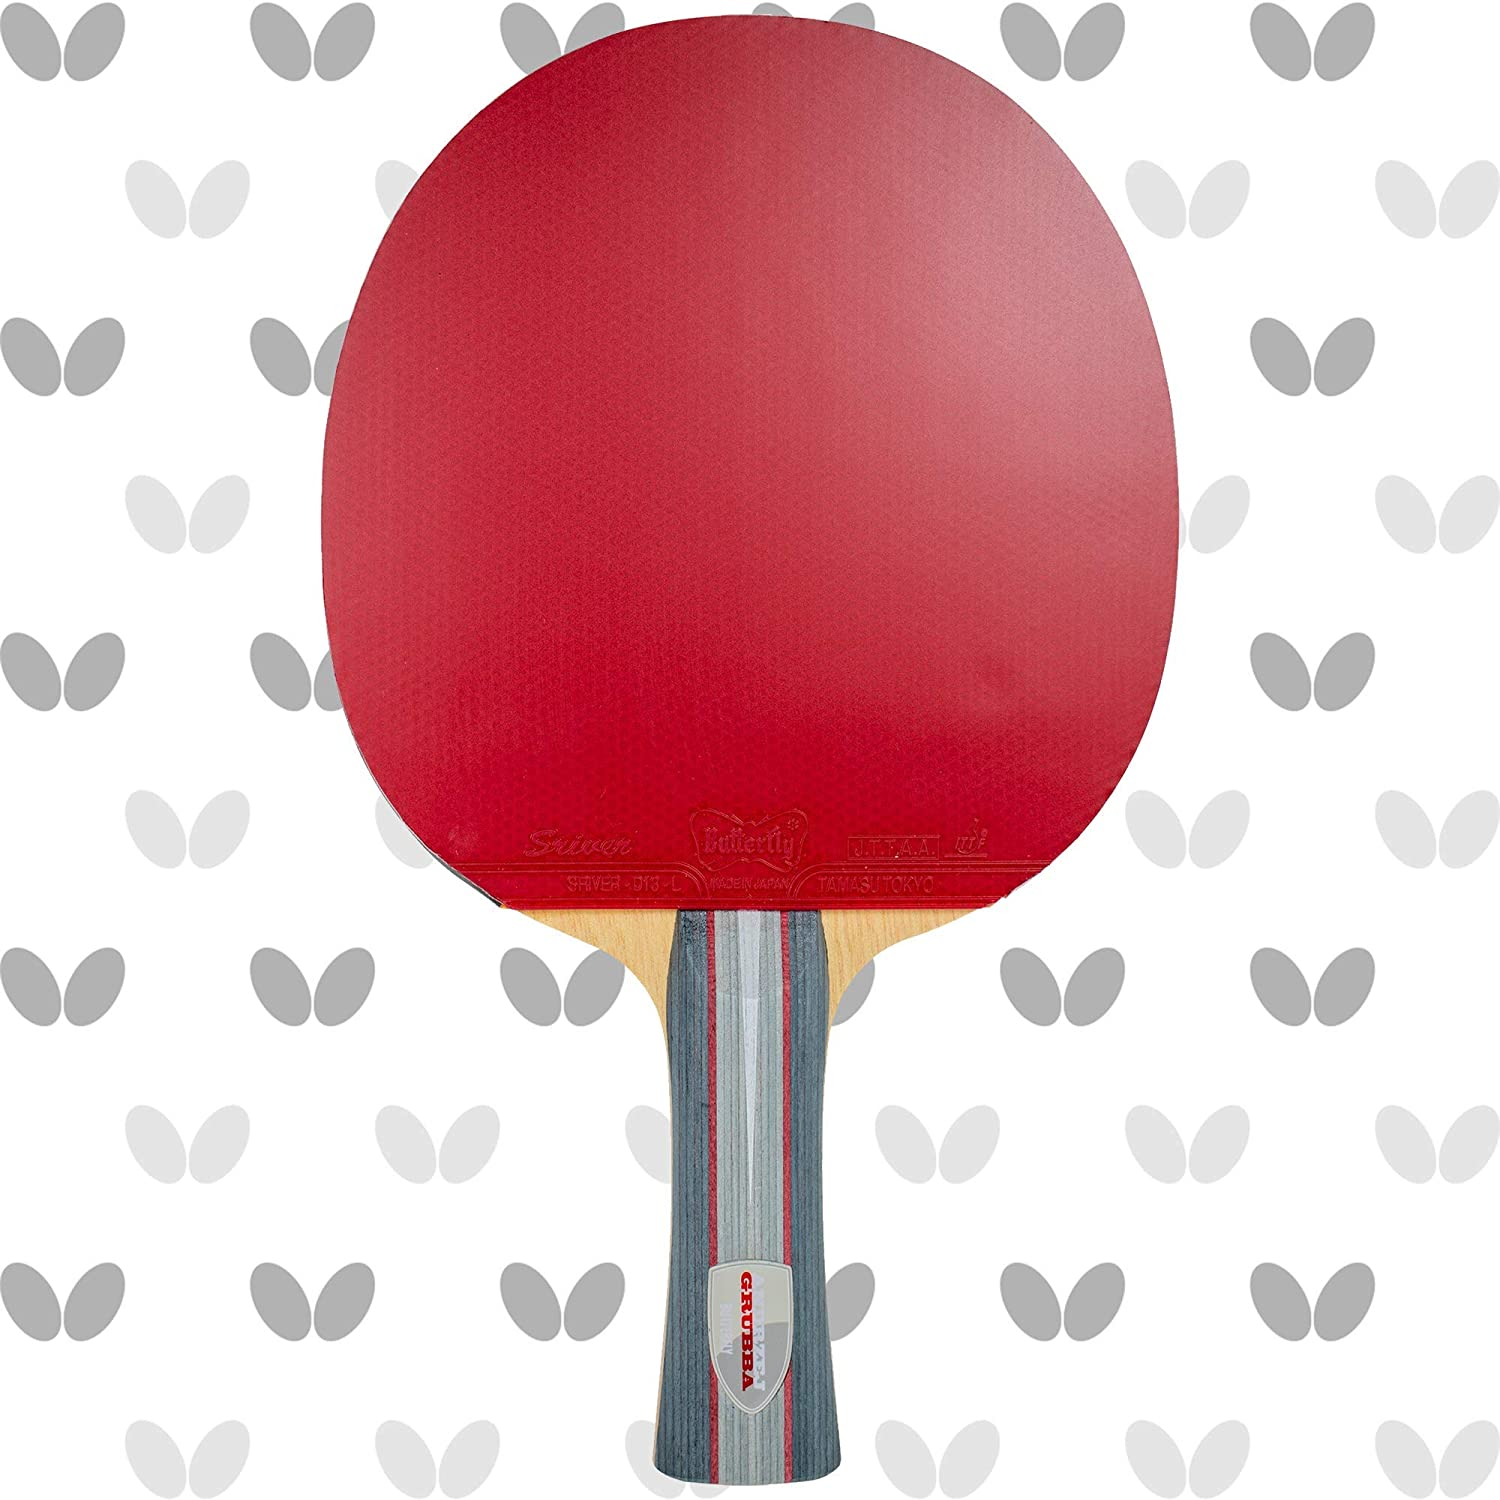 Butterfly Saboteur Pro-Line Table Tennis Racket - Excellent for Players Using A Modified Shakehand Grip (Seemiller Grip) - Recommended for Advanced Level Players - Pro-Line Series